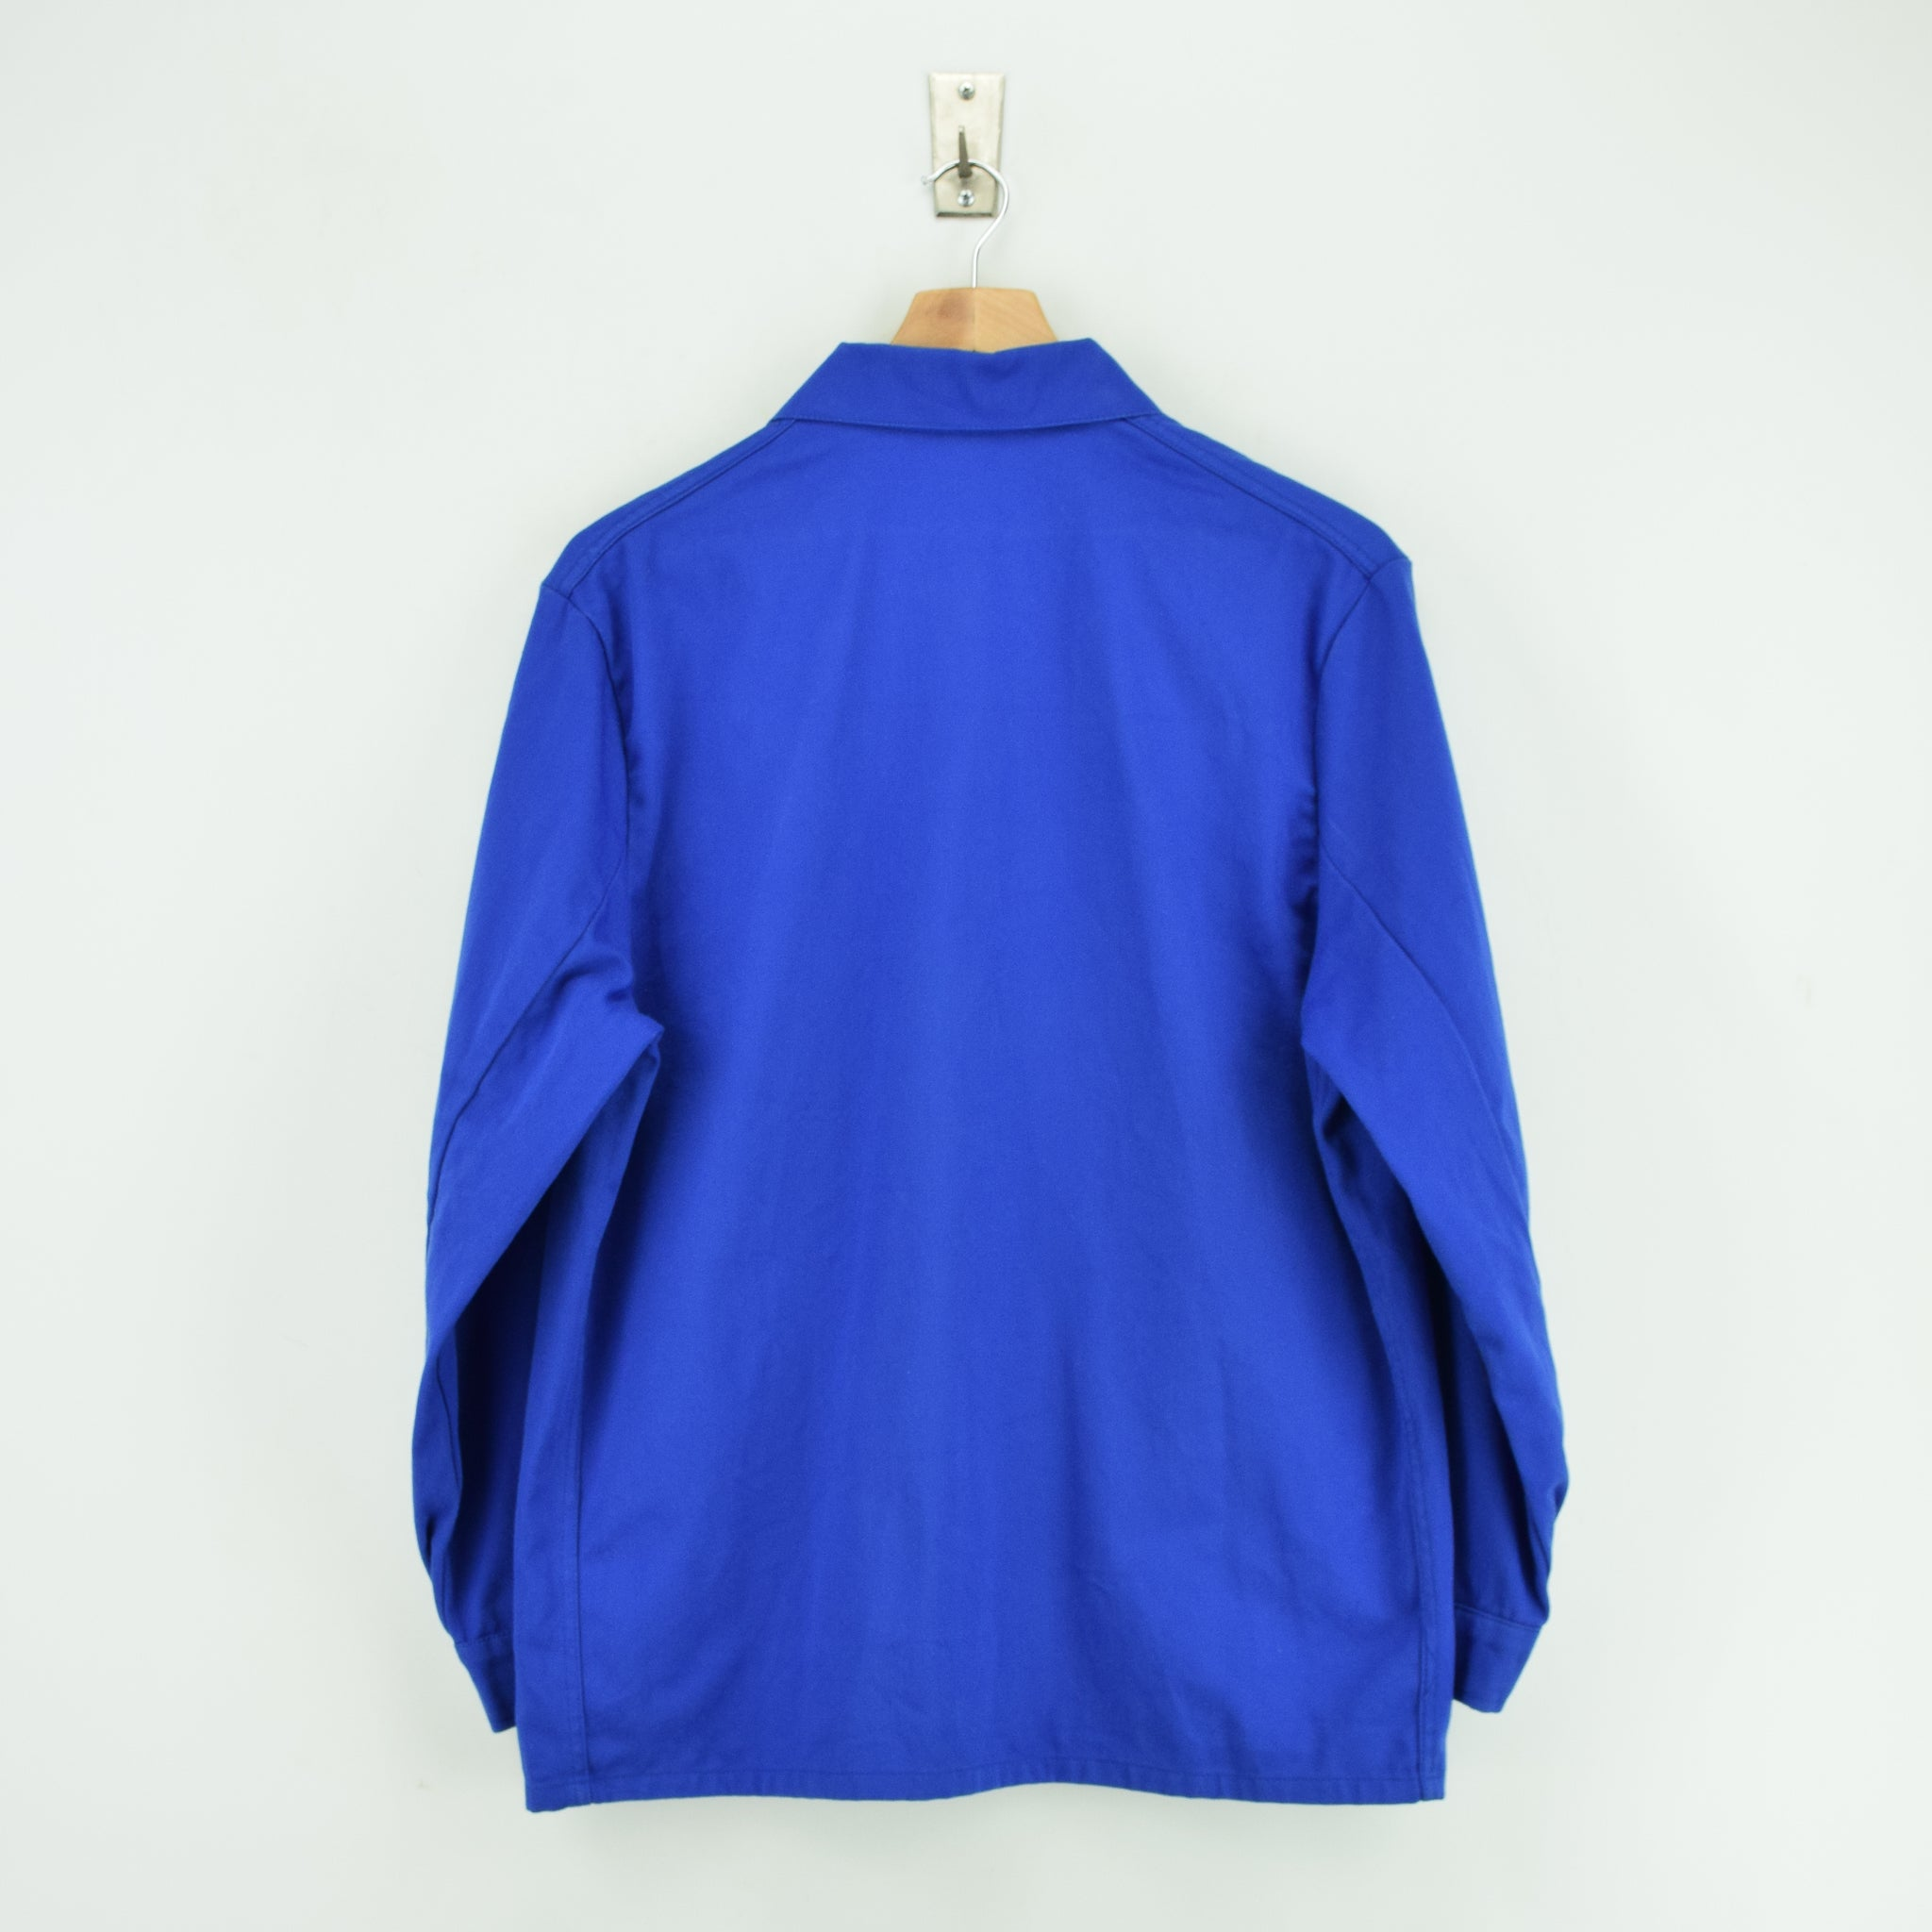 Vintage Bright Blue French Style Worker Sanforized Cotton Chore Jacket M back